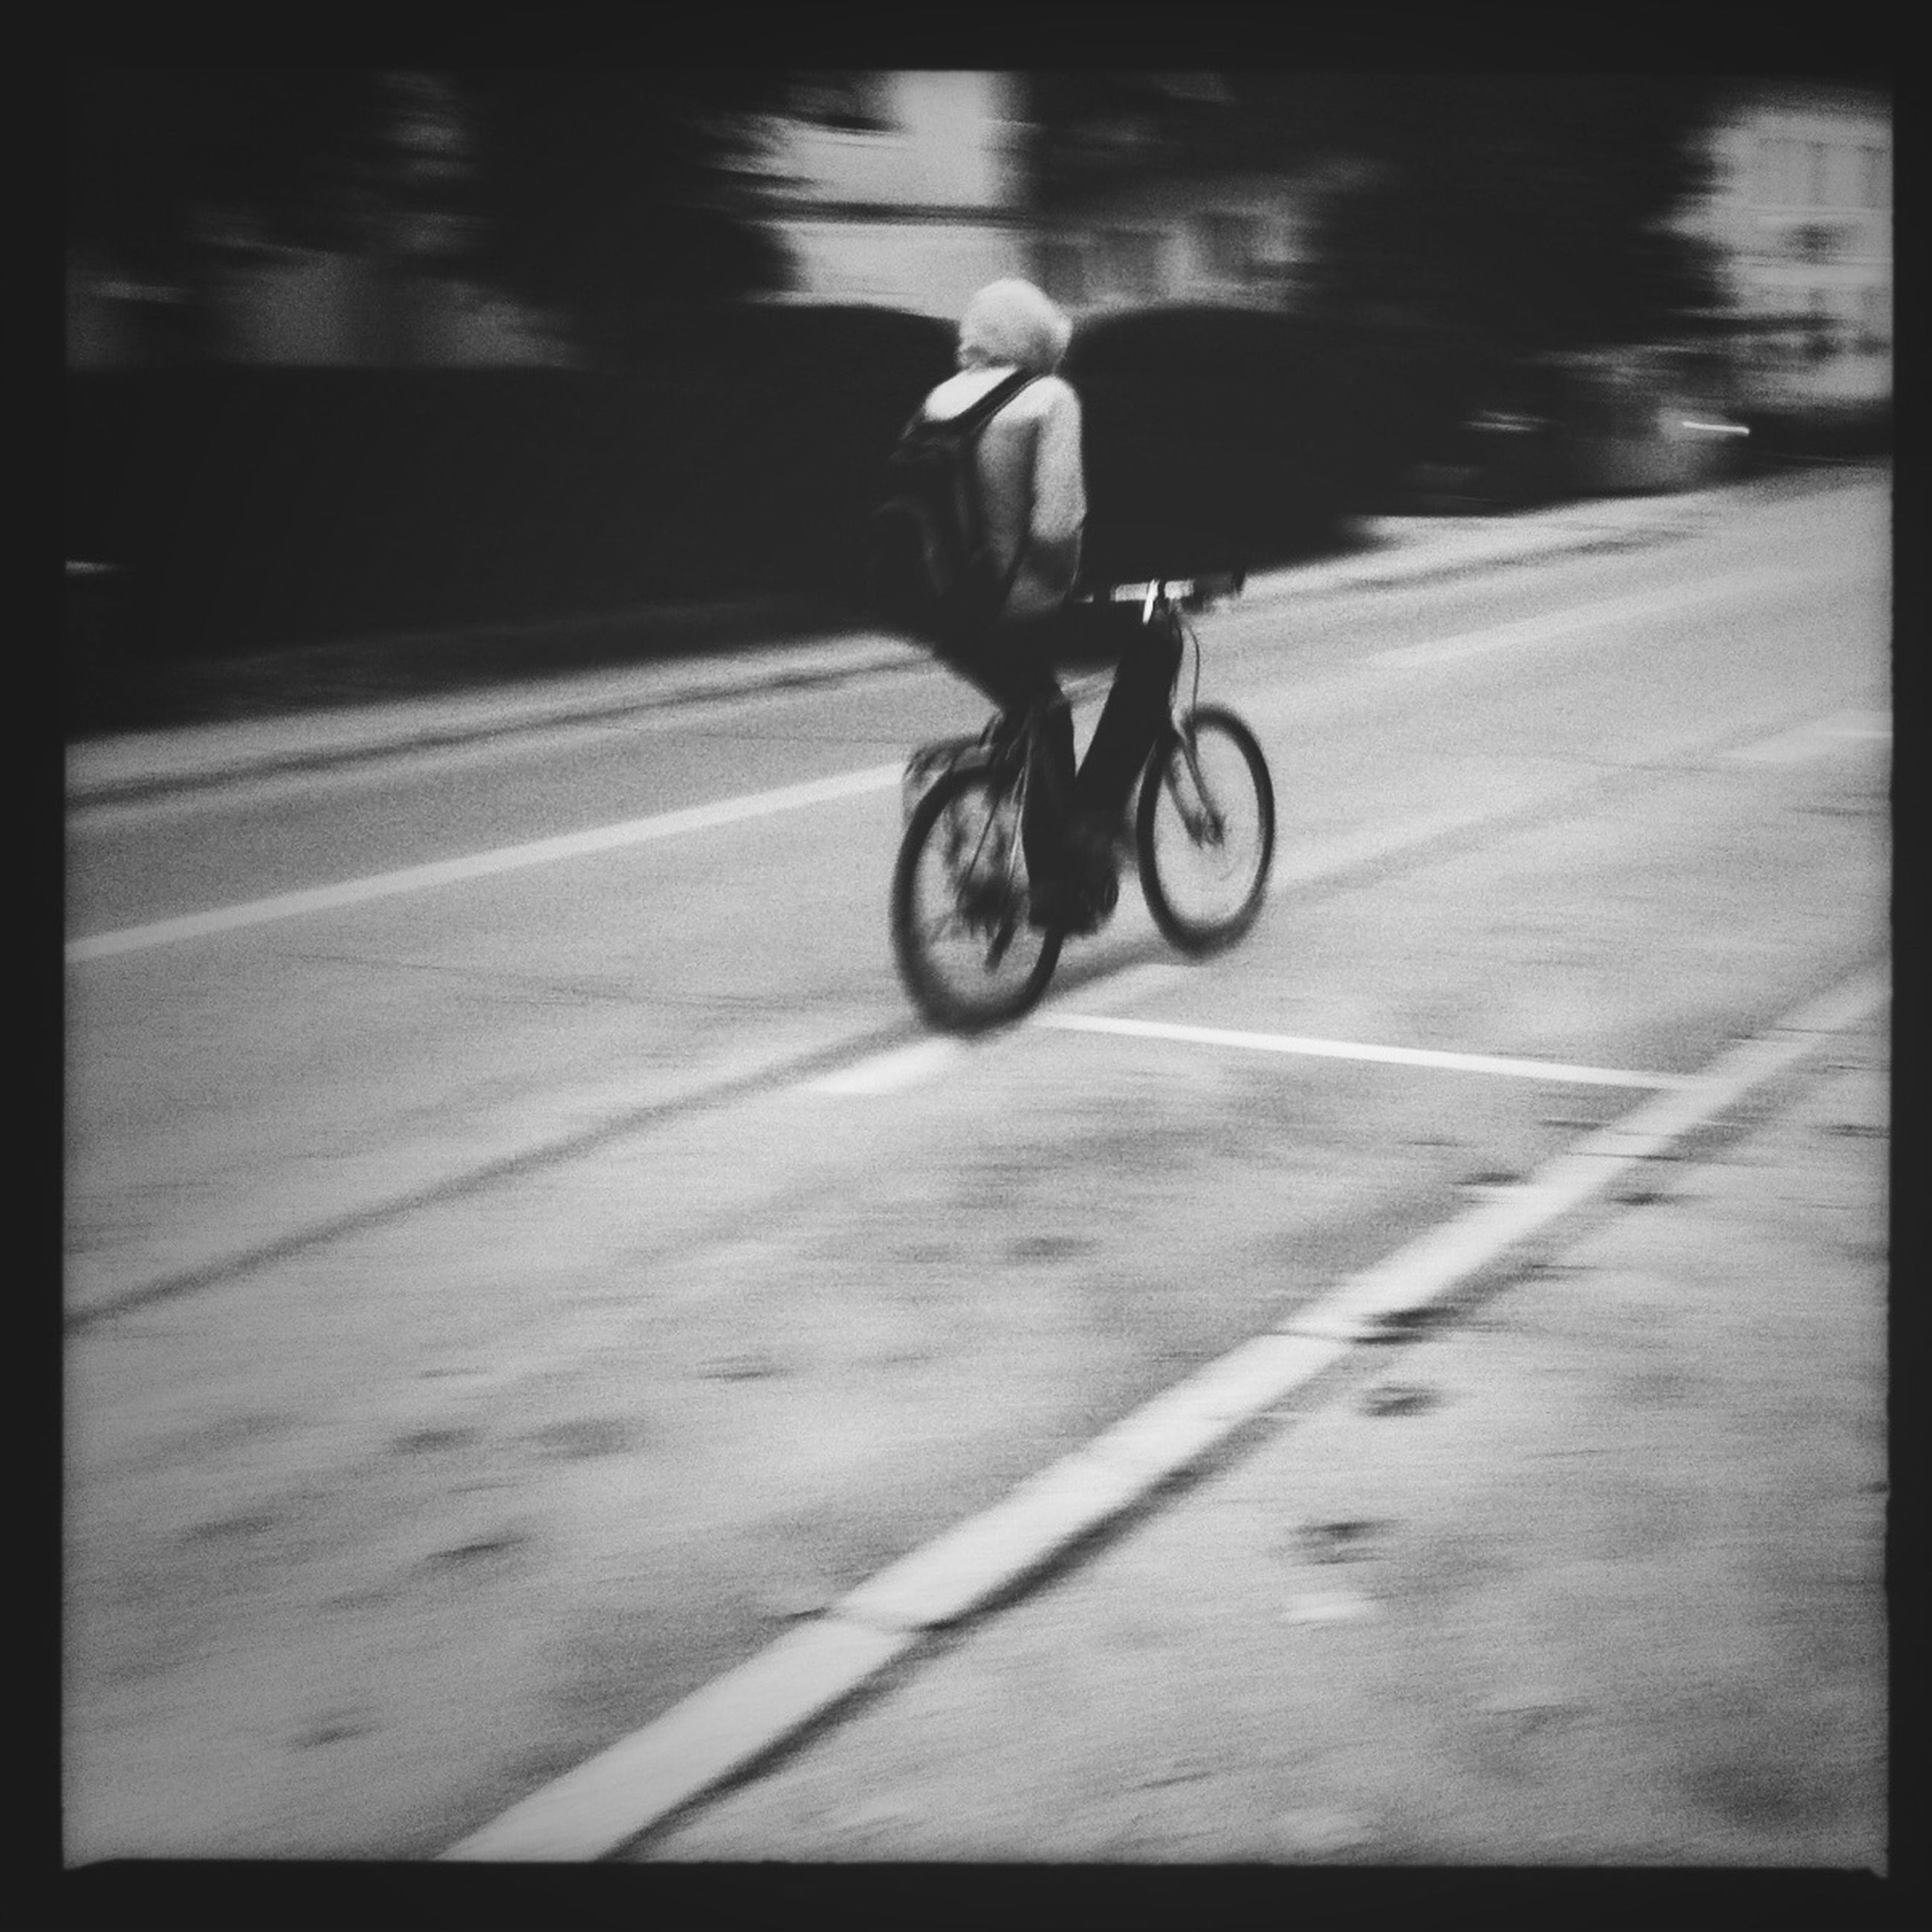 transportation, land vehicle, mode of transport, bicycle, street, road, on the move, riding, blurred motion, car, motion, road marking, travel, cycling, shadow, full length, lifestyles, auto post production filter